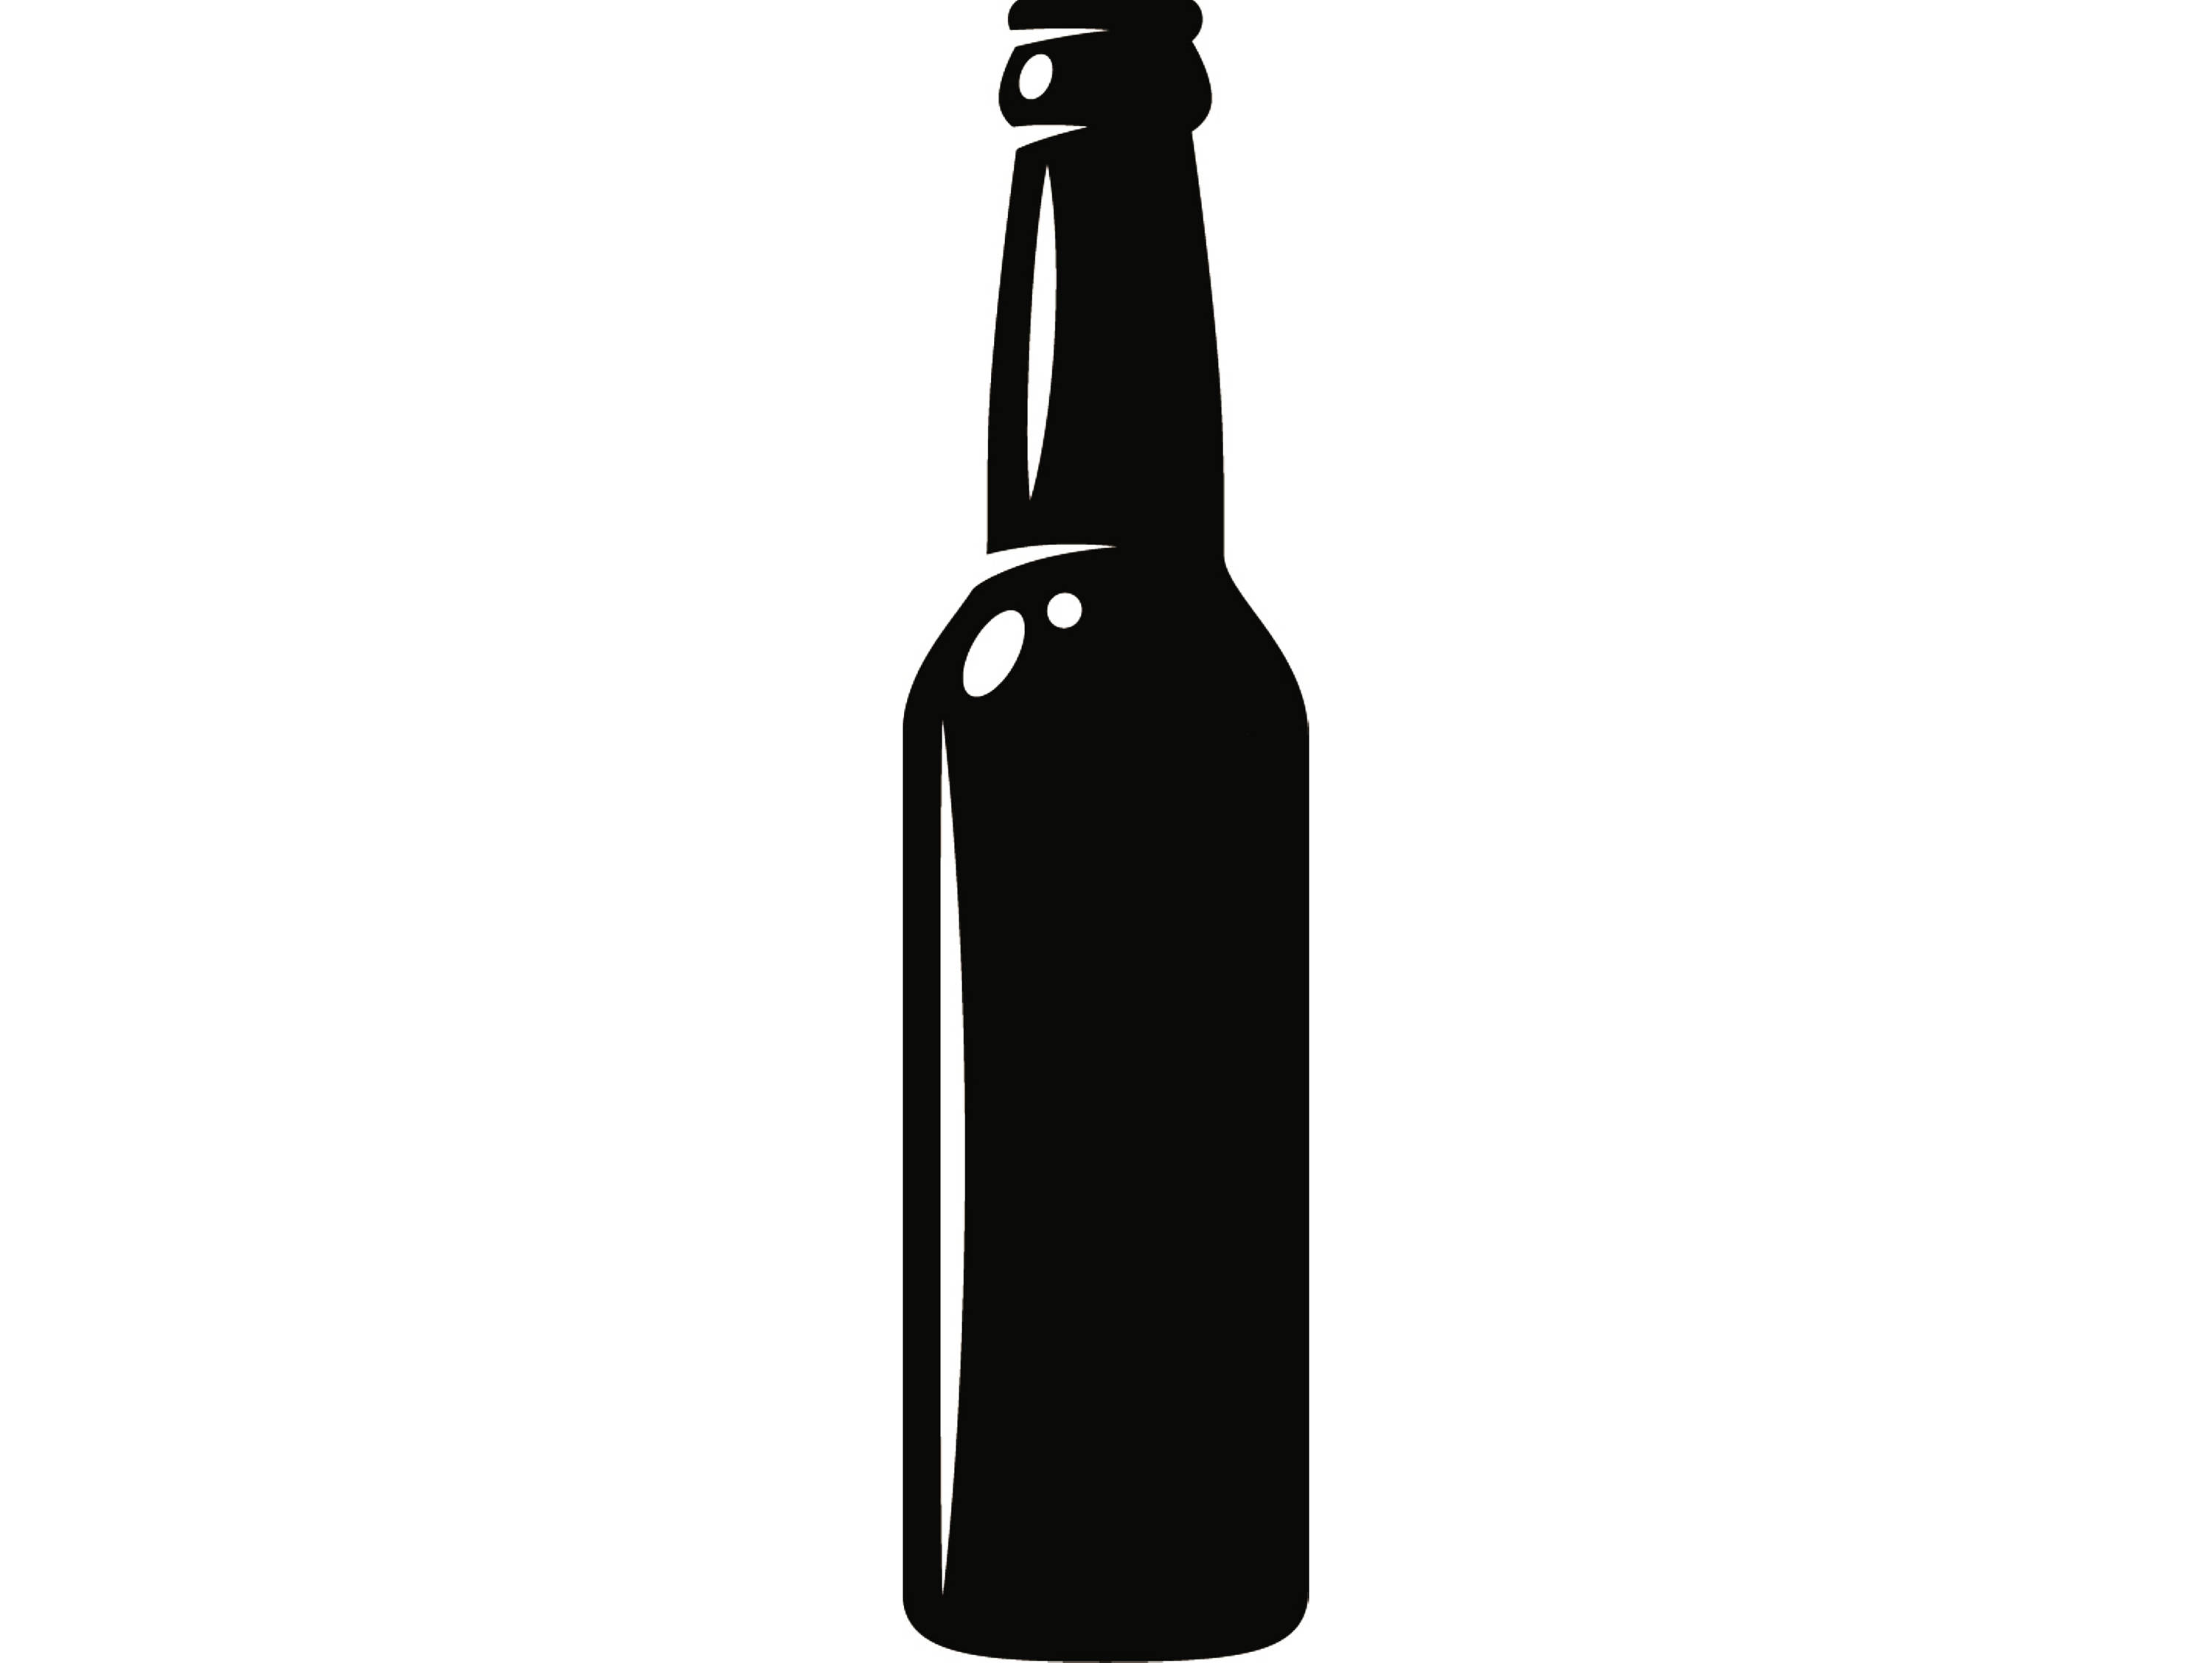 Beer bottle clipart black and white freeuse library Beer Bottle Clipart | Free download best Beer Bottle Clipart on ... freeuse library